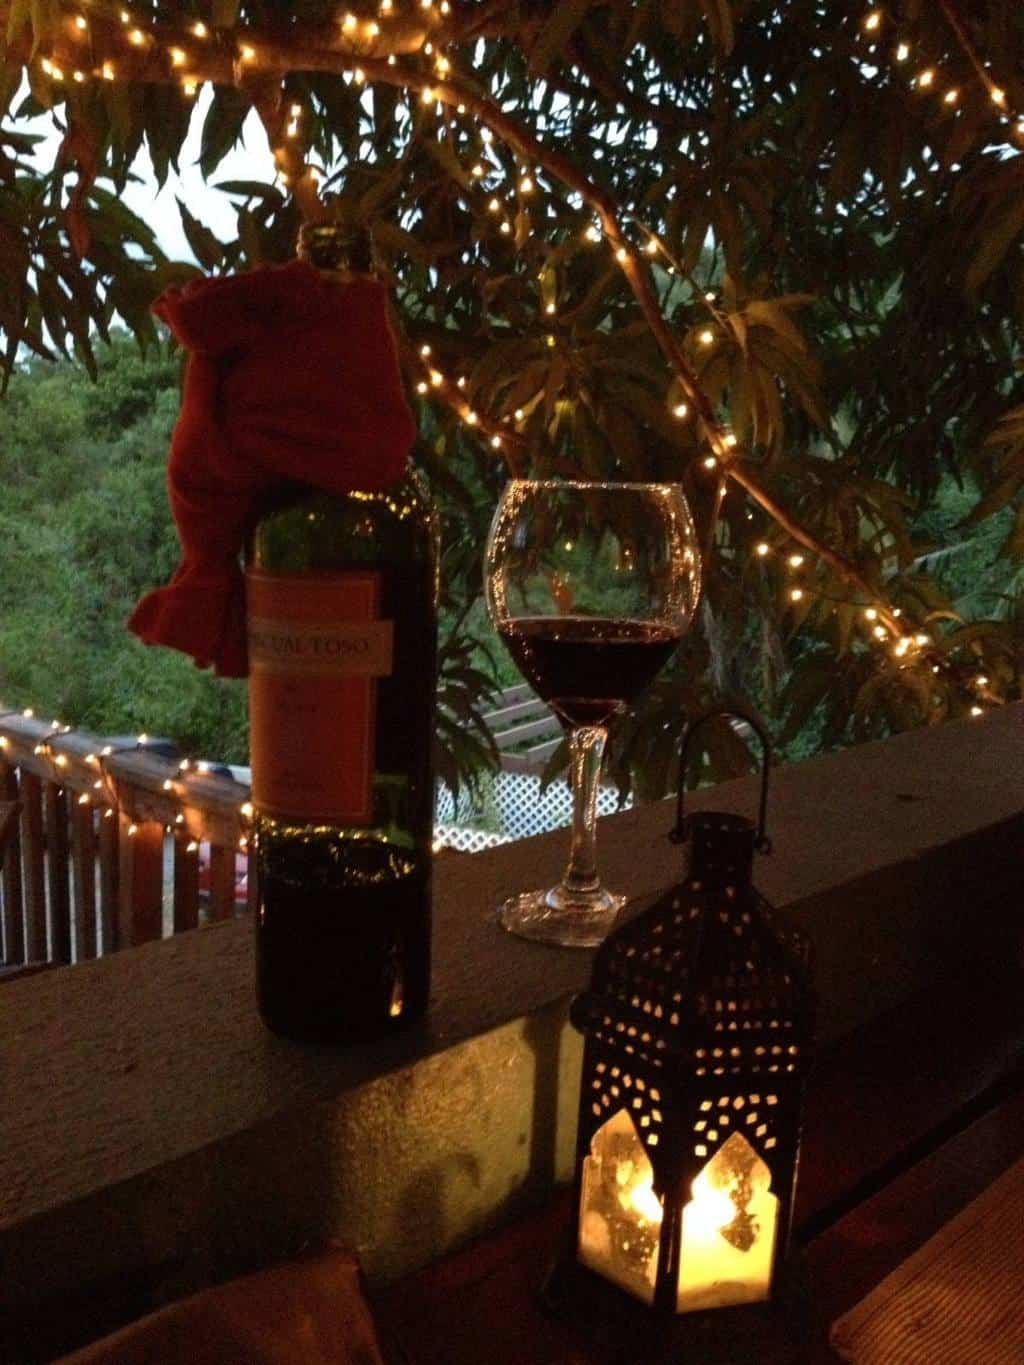 Bottle of wine on a candle lit table in a restaurant on Vieques Island.